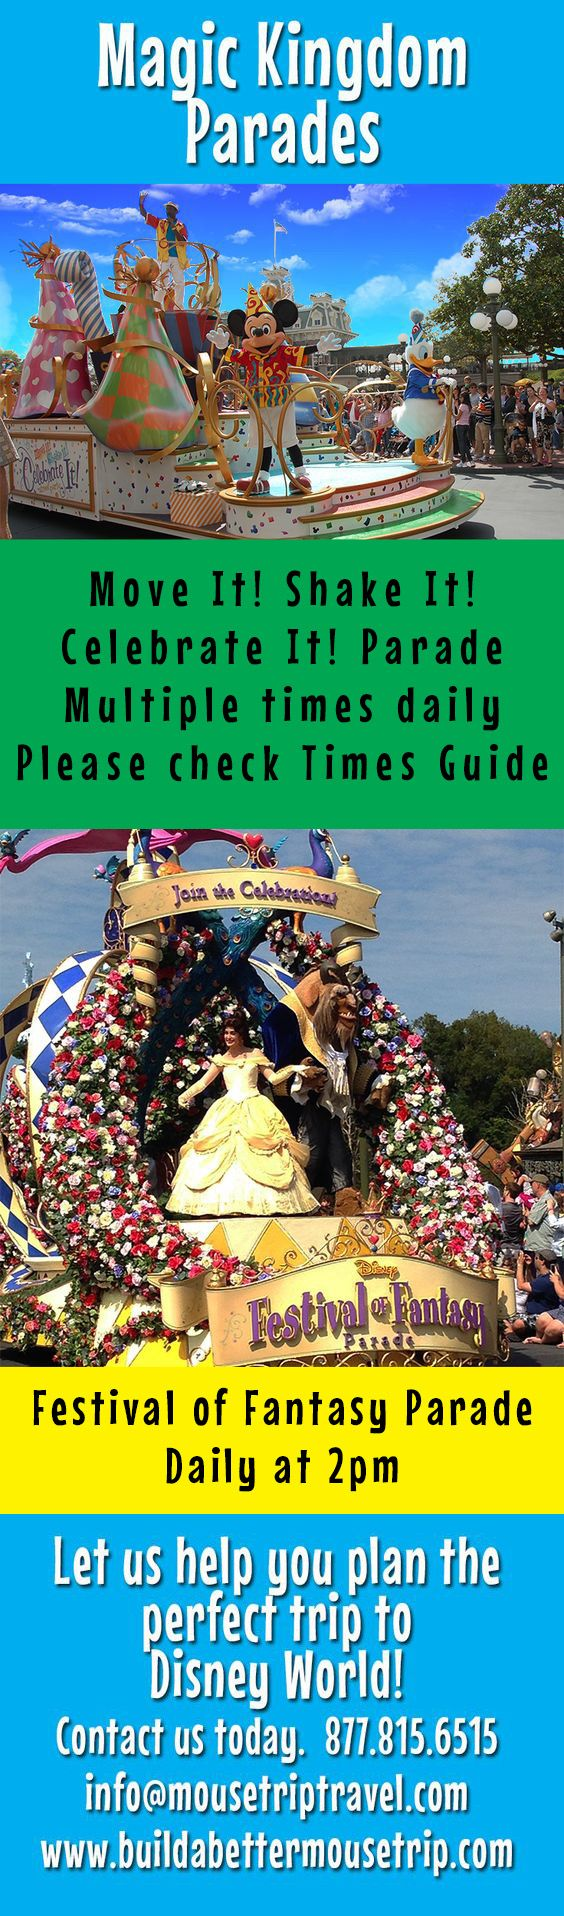 """Magic Kingdom Parade schedule - Disney World. Includes """"Move It!, Shake It! Celebrate It!"""" and the Festival of Fantasy afternoon parade. Check Magic Kingdom Times Guide (found near the park maps) for exact schedule during your trip. For Disney World ride closures, crowd warnings, and special event information, see: http://www.buildabettermousetrip.com/crowds-closures-special-events/ #FestivalofFantasy"""